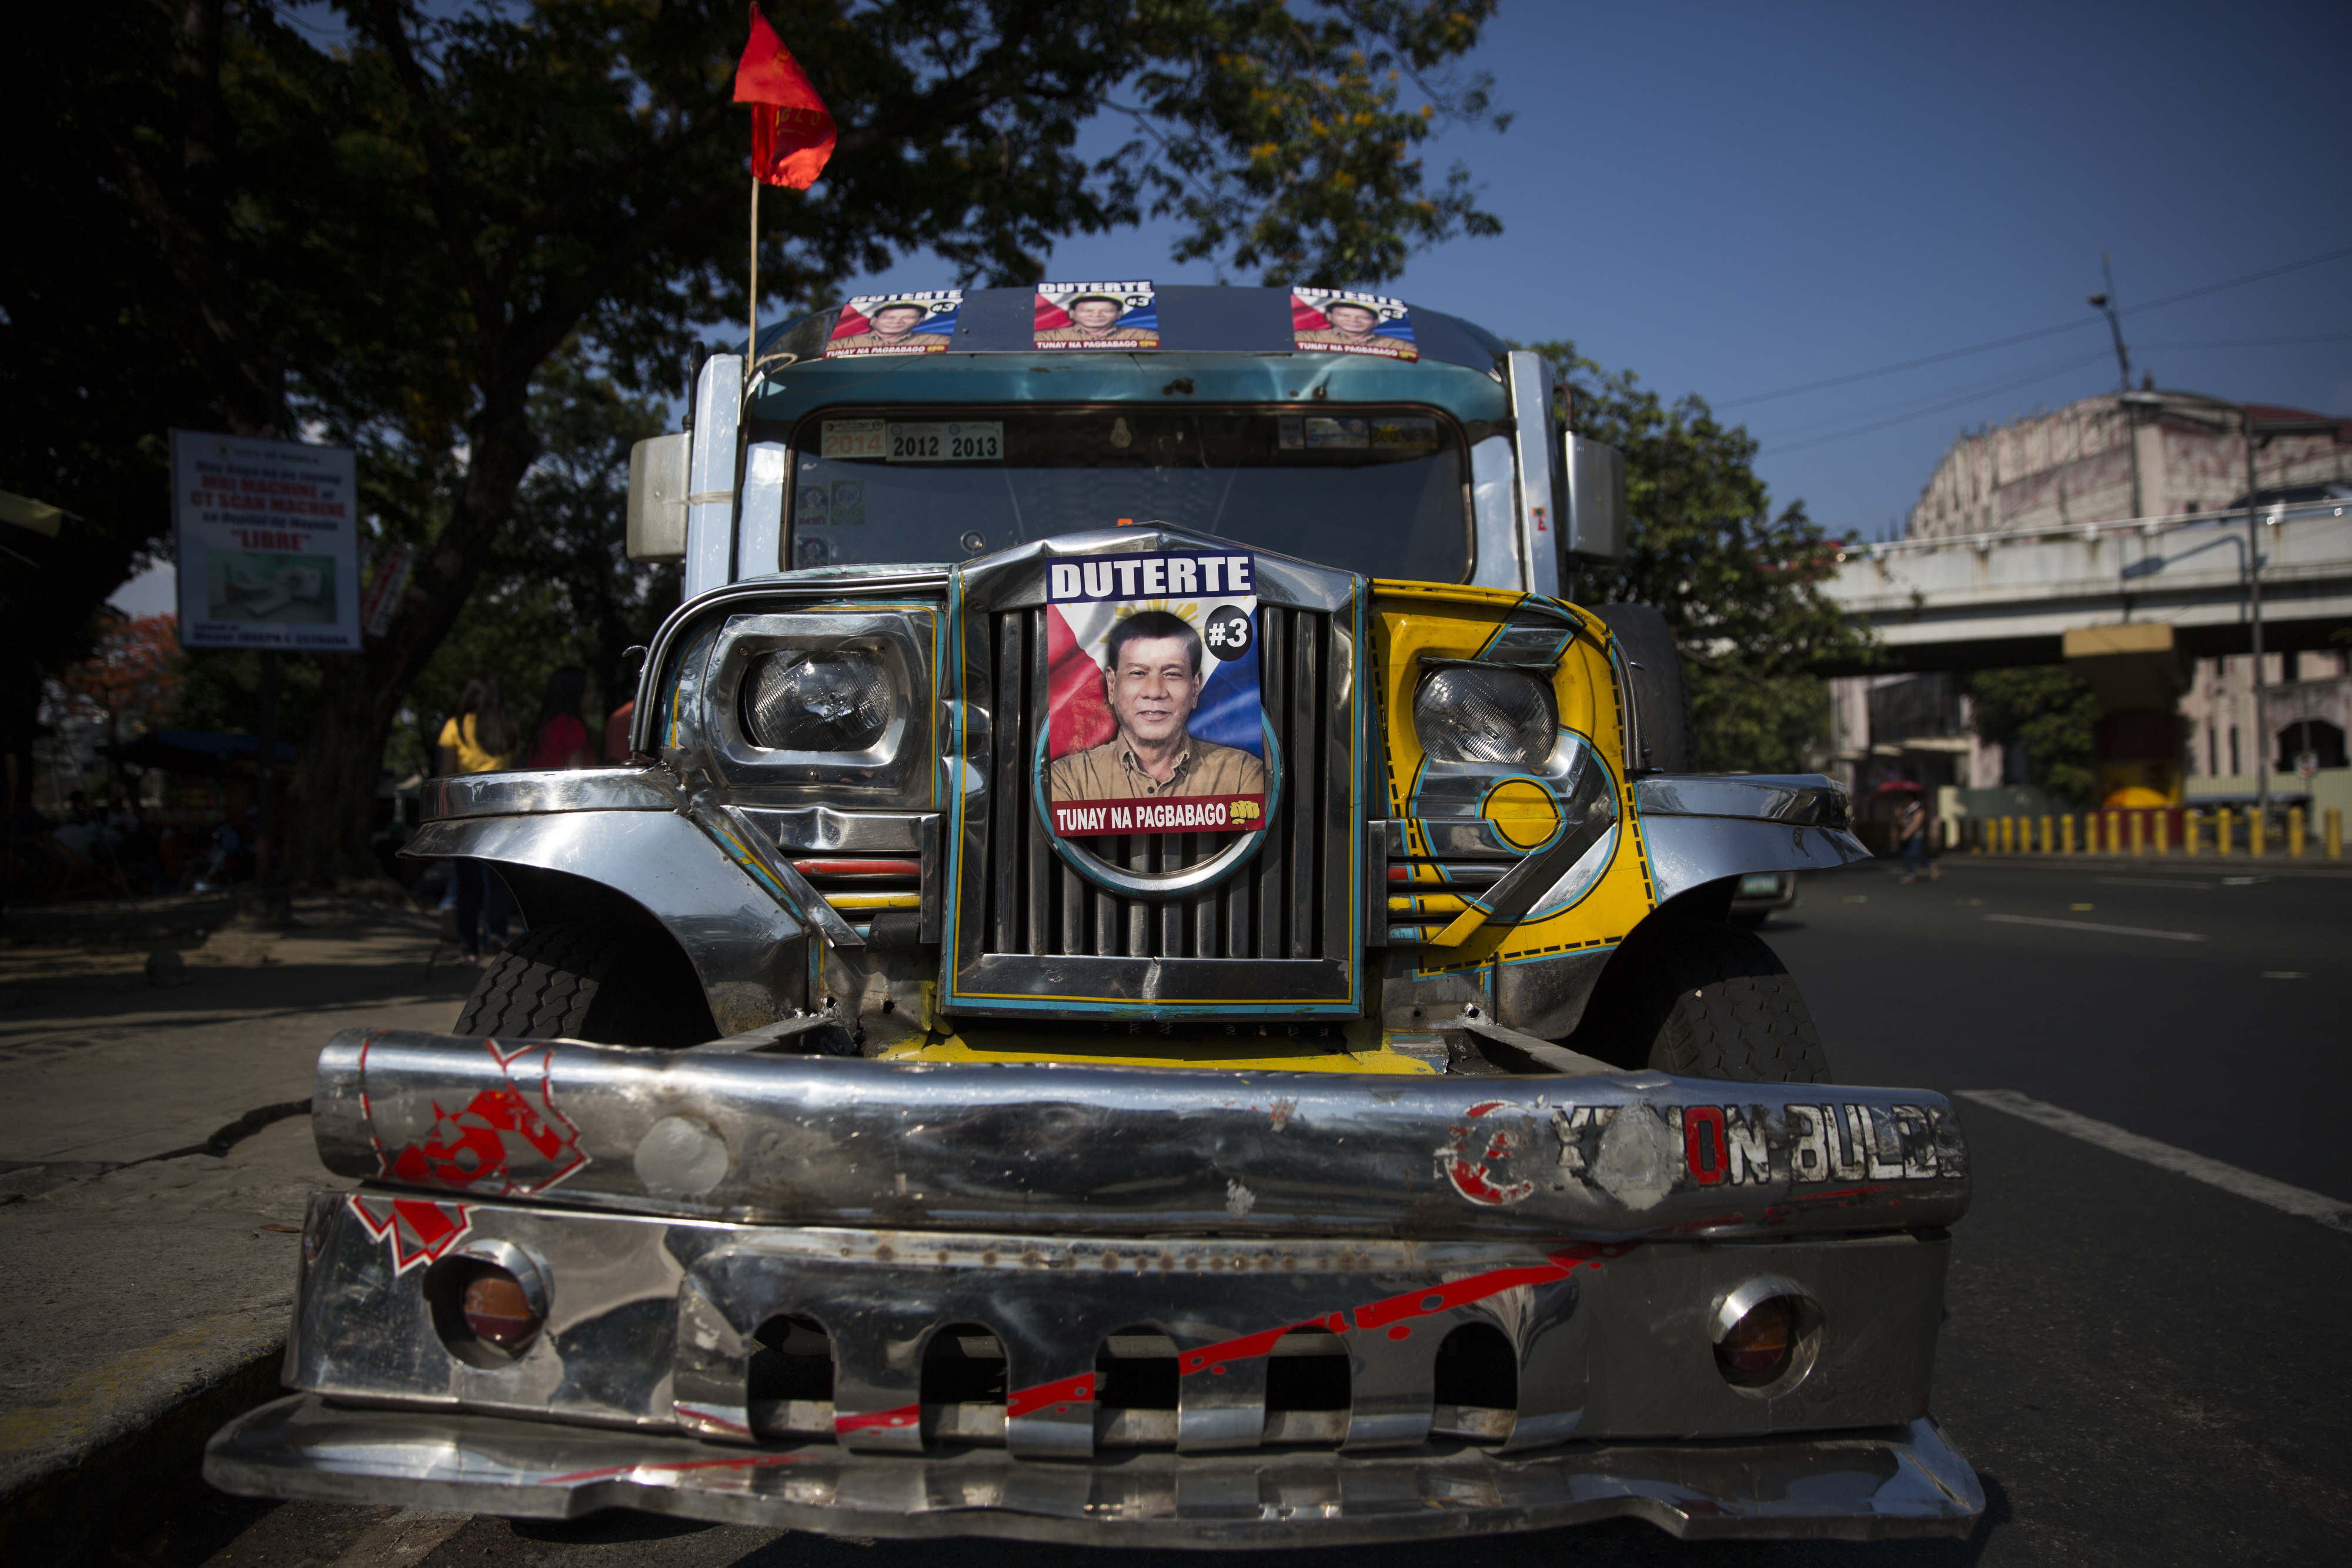 A jeepney, or jeep, is decorated with posters showing the face of Rodrigo Duterte, mayor of Davao City and presidential candidate, at a campaign rally in Manila on May 1, 2016